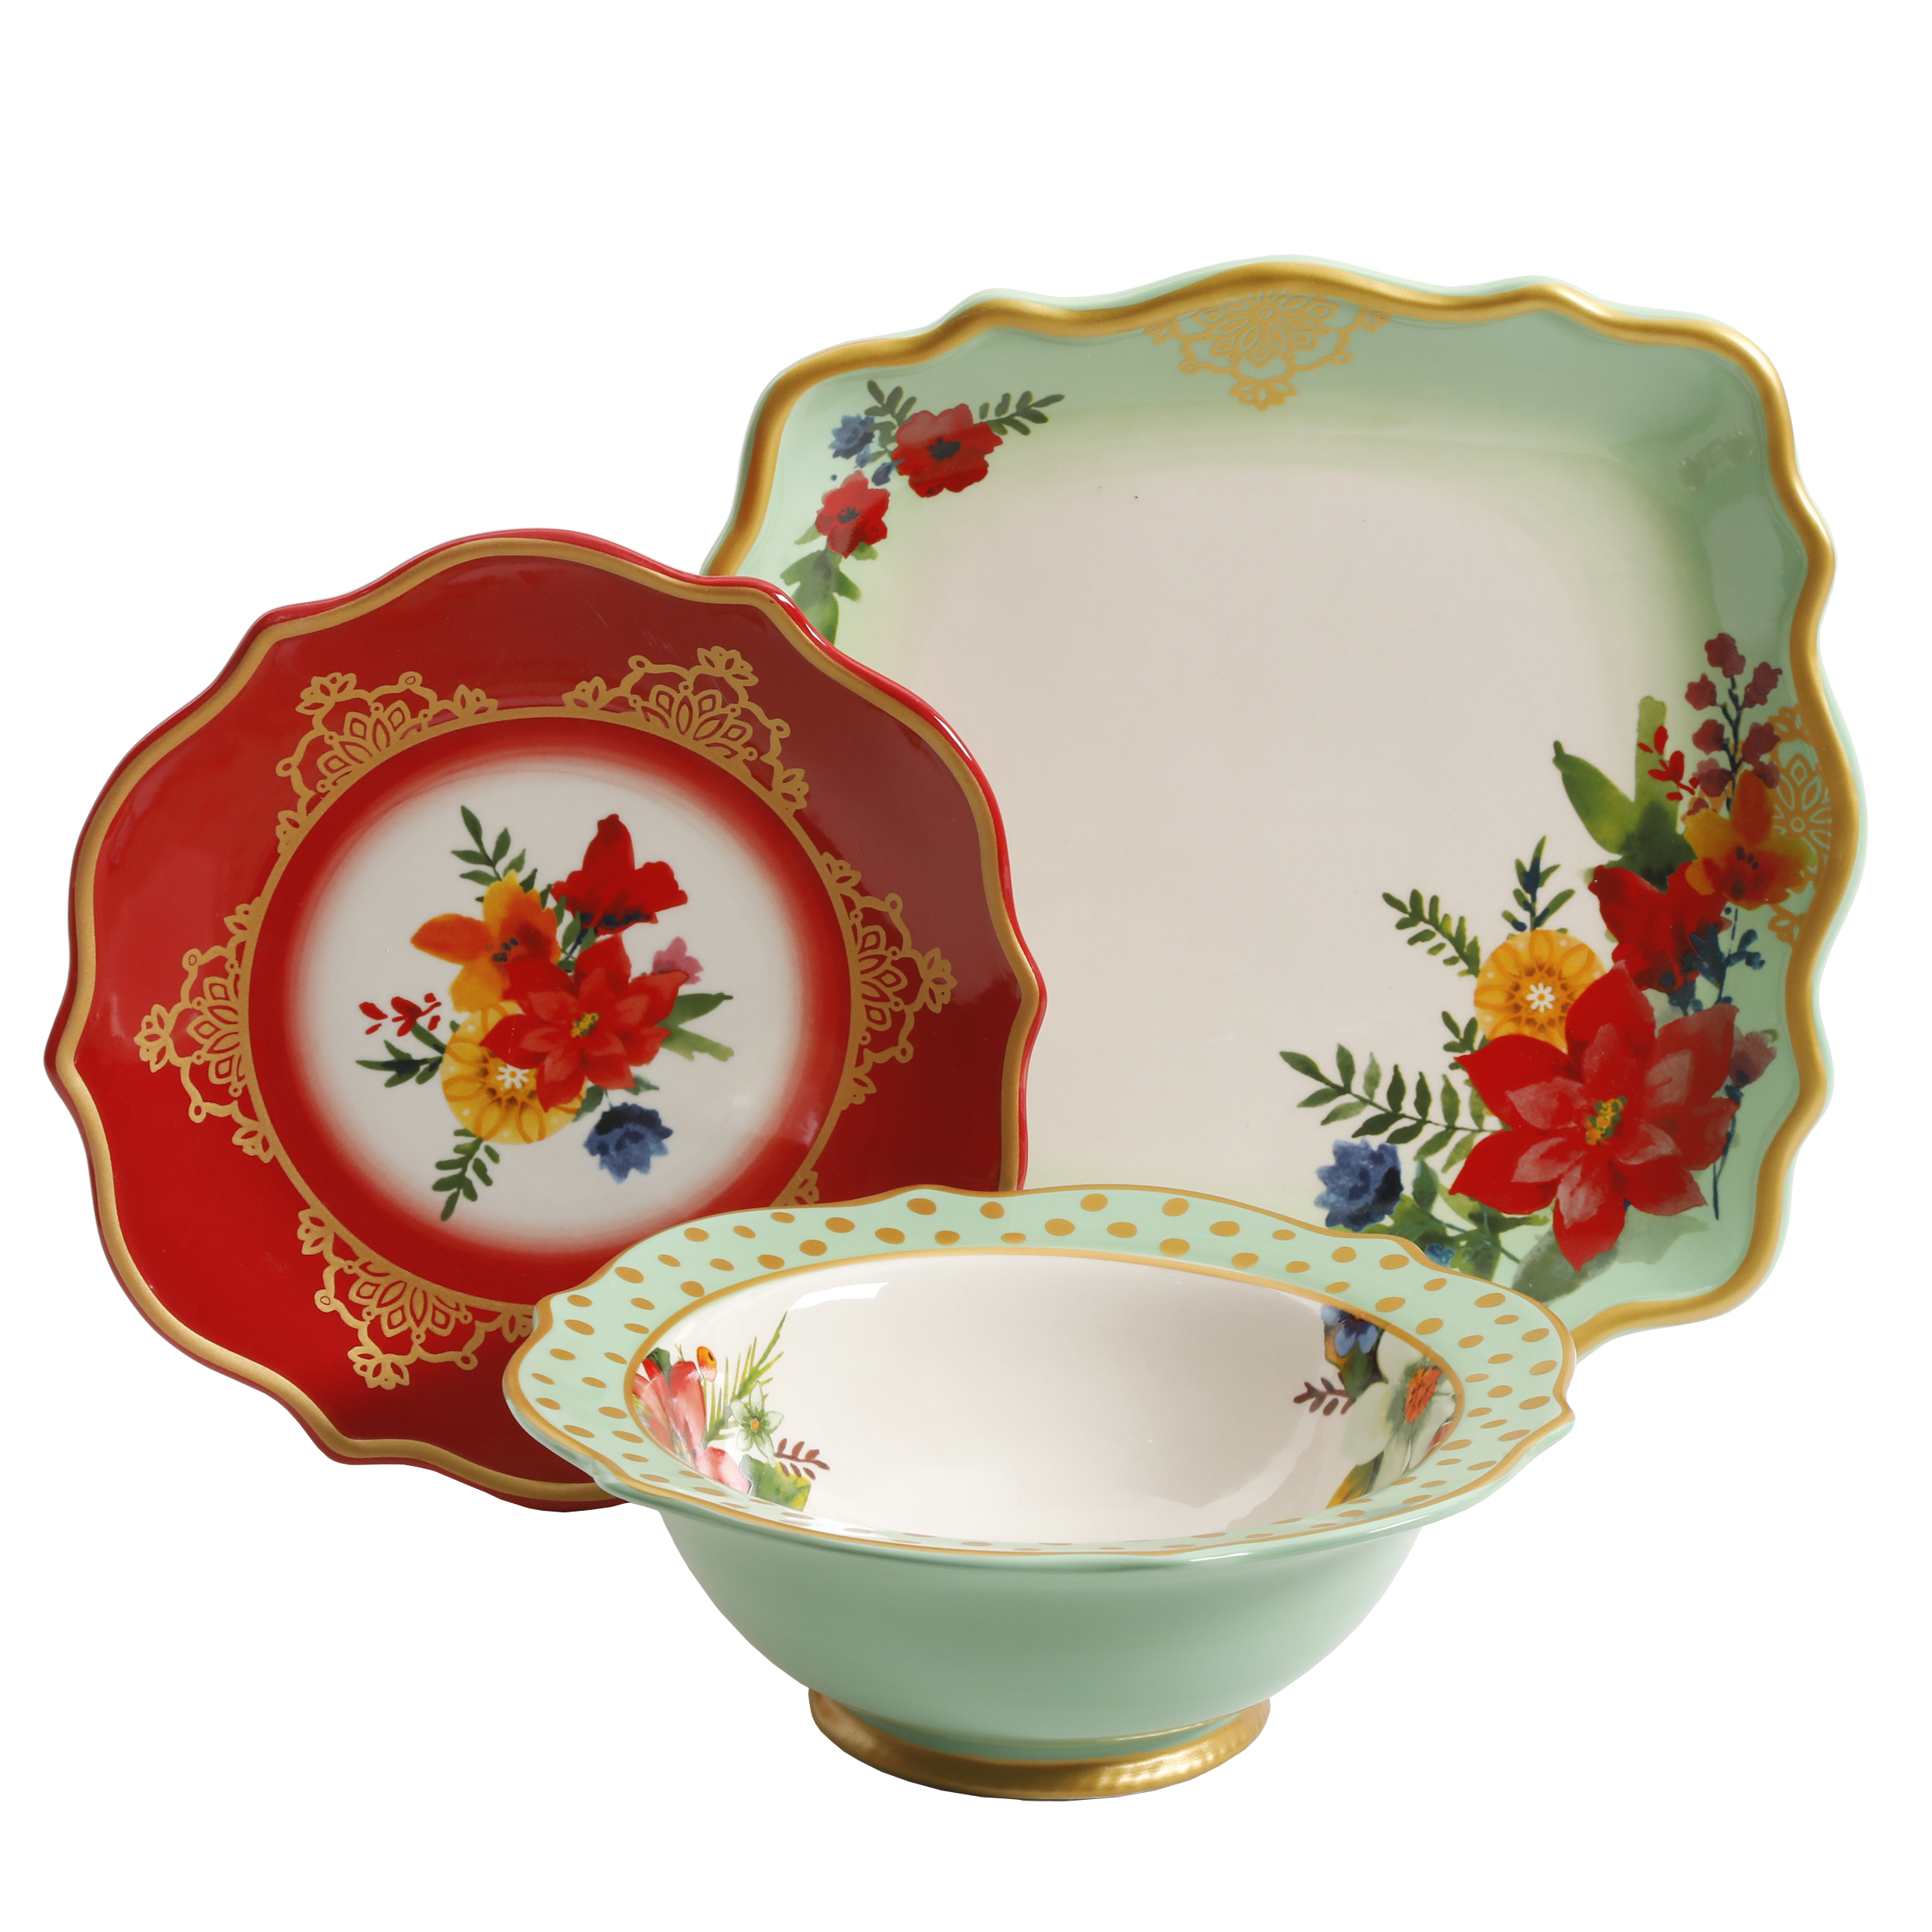 The Pioneer Woman Winter Bouquet 12-Piece Dinnerware Set  sc 1 st  eBay & The Pioneer Woman Winter Bouquet 12-Piece Dinnerware Set Dishes ...